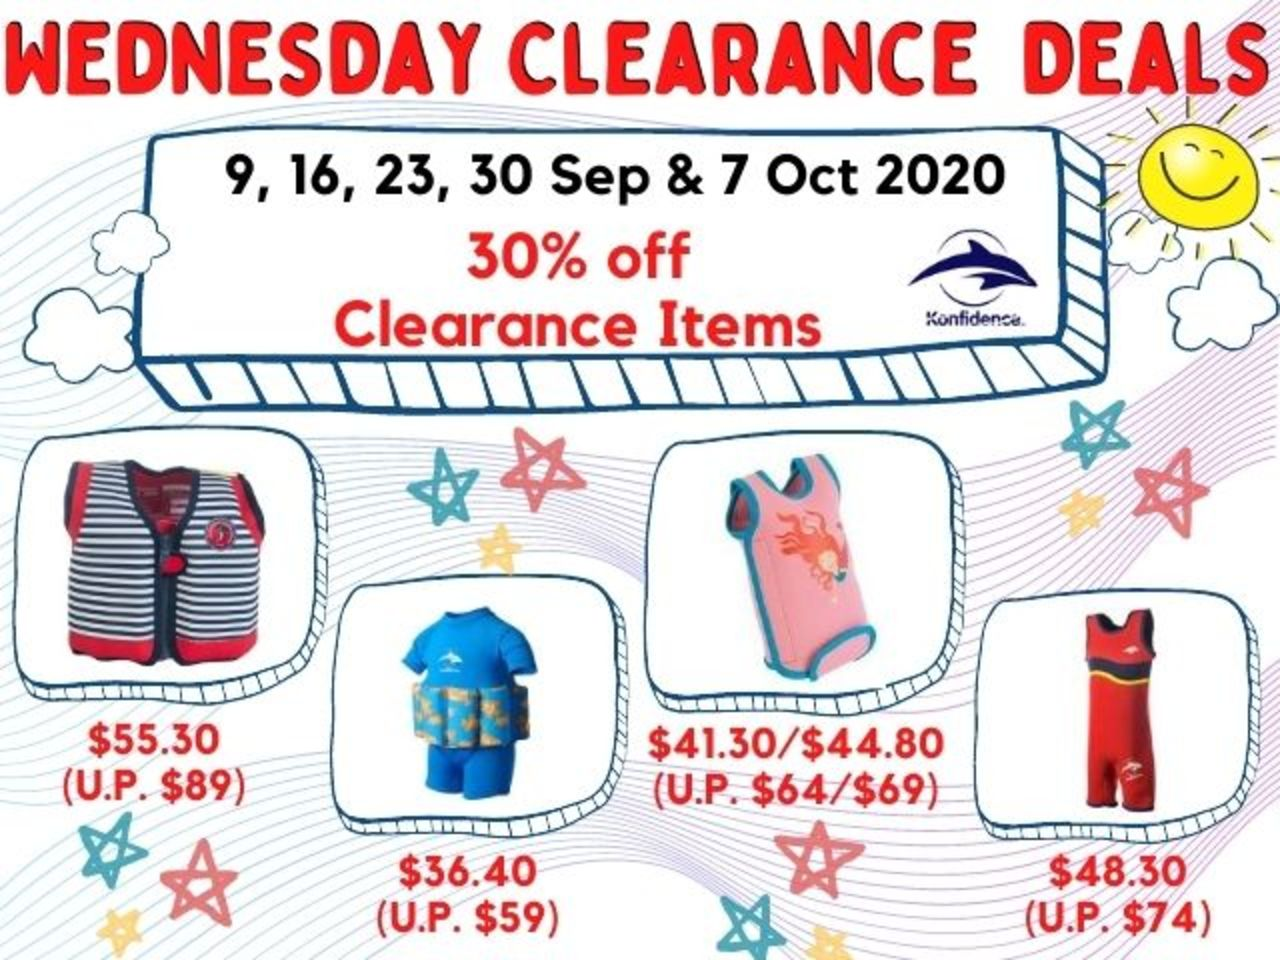 Every Wed 9,16,23,30 Sept and 7 Oct Deal: The Konfidence Clearance Best Buys at 30% Off! (RRP $64-89)